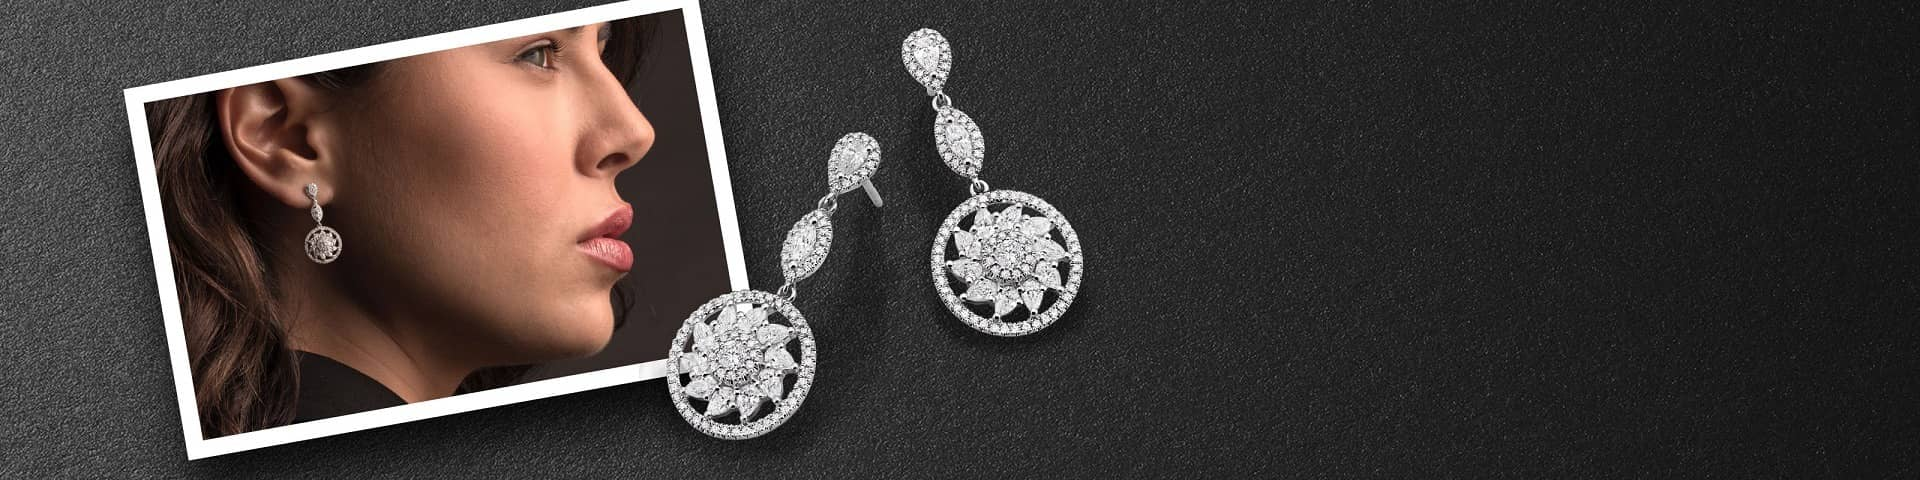 Diamond drop earrings rest against a portrait of a woman modeling the same pair of earrings.